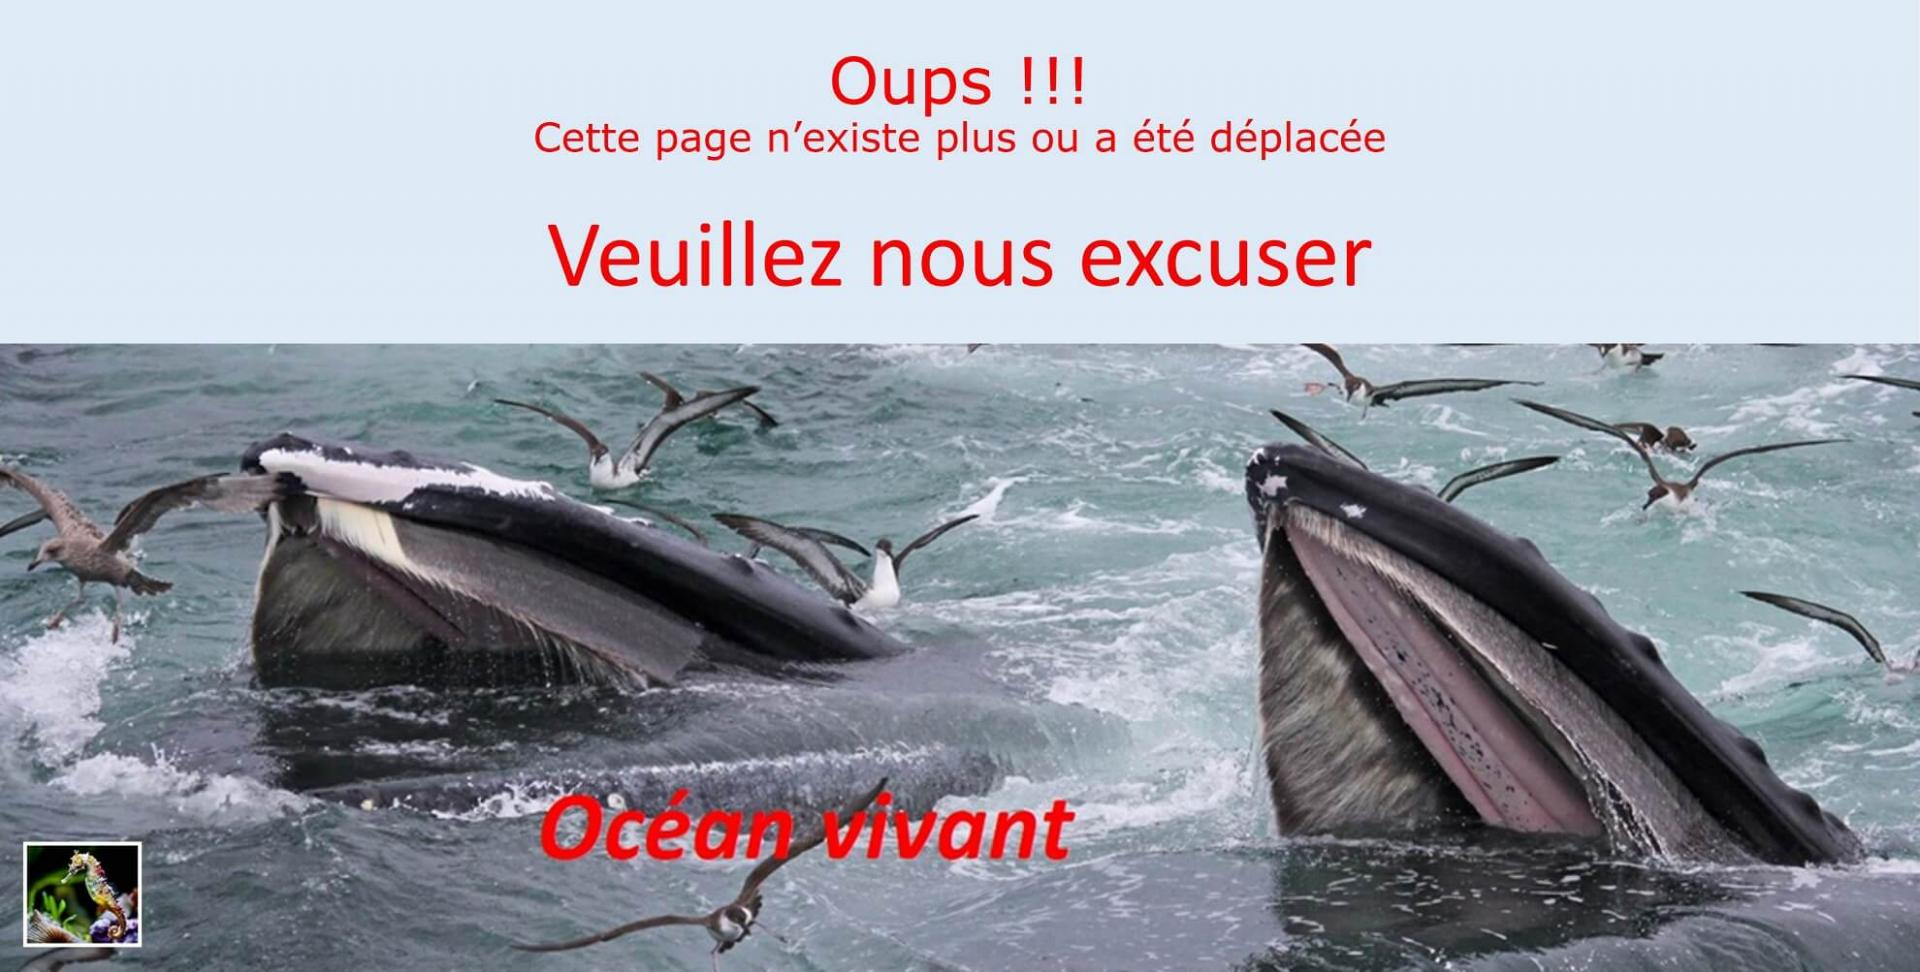 Oups !!!